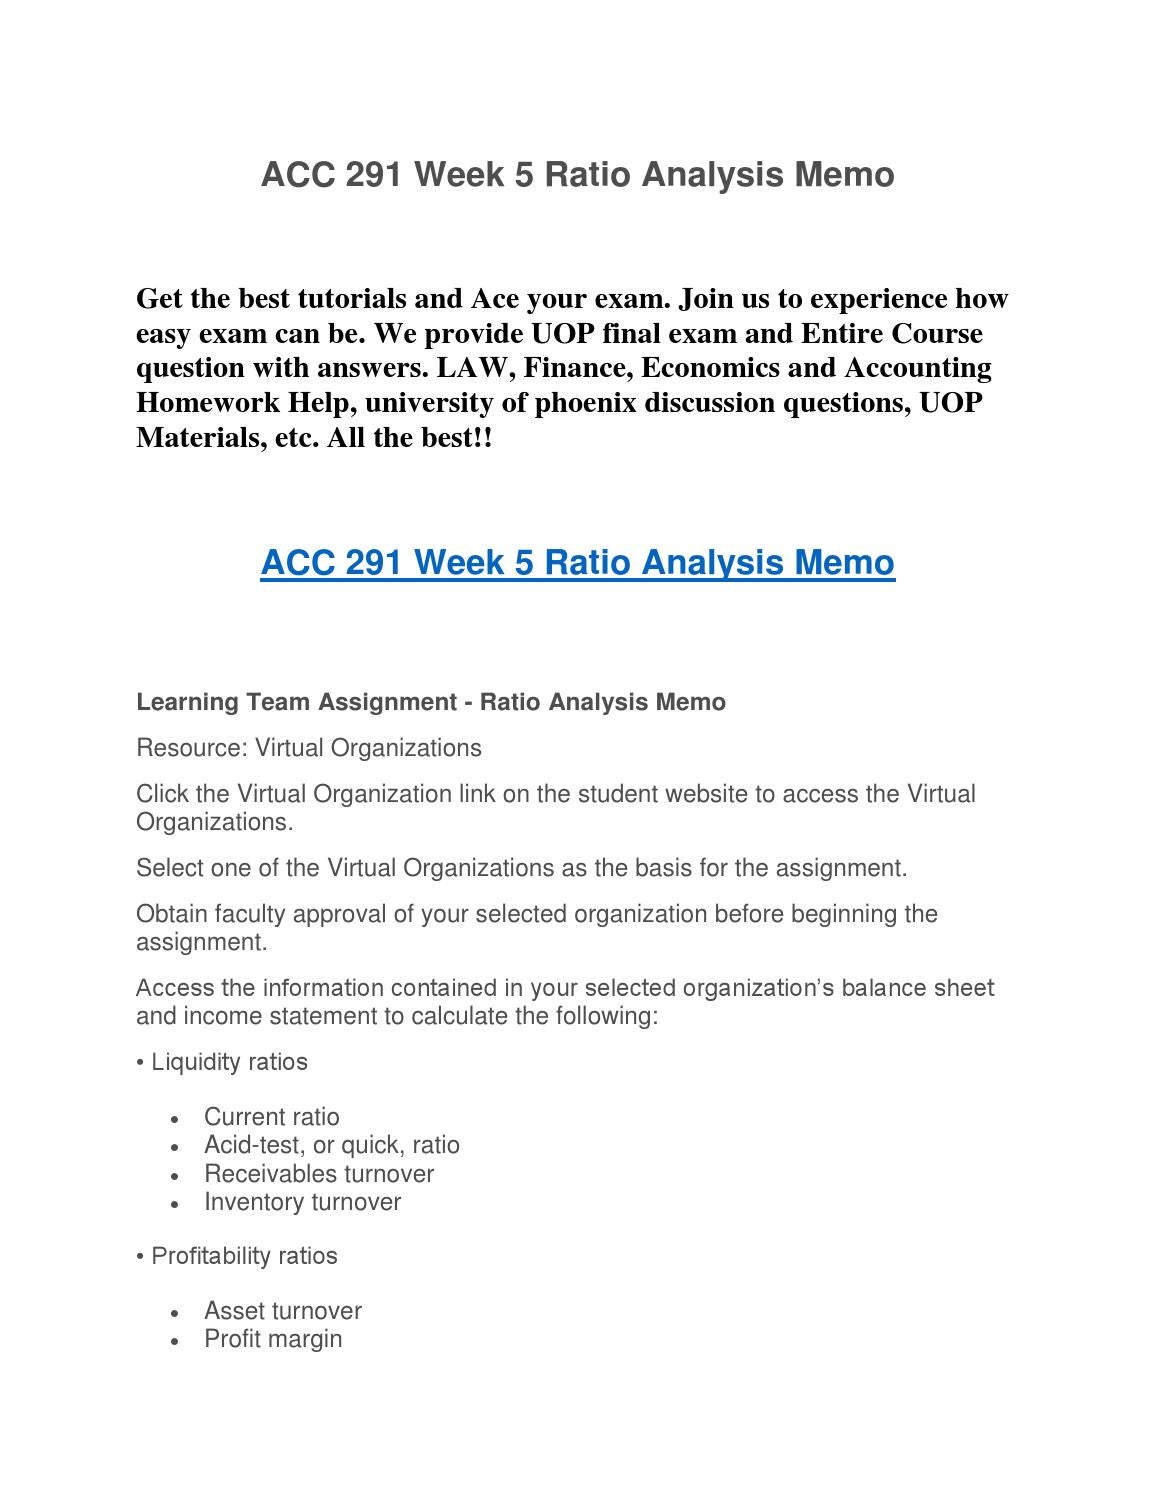 team a ratio analysis memo liquidity Snaptutorial is a online tutorial store we provides acc 363 week 5 learning team ratio analysis memo and presentation  in your memo, address: what the liquidity .